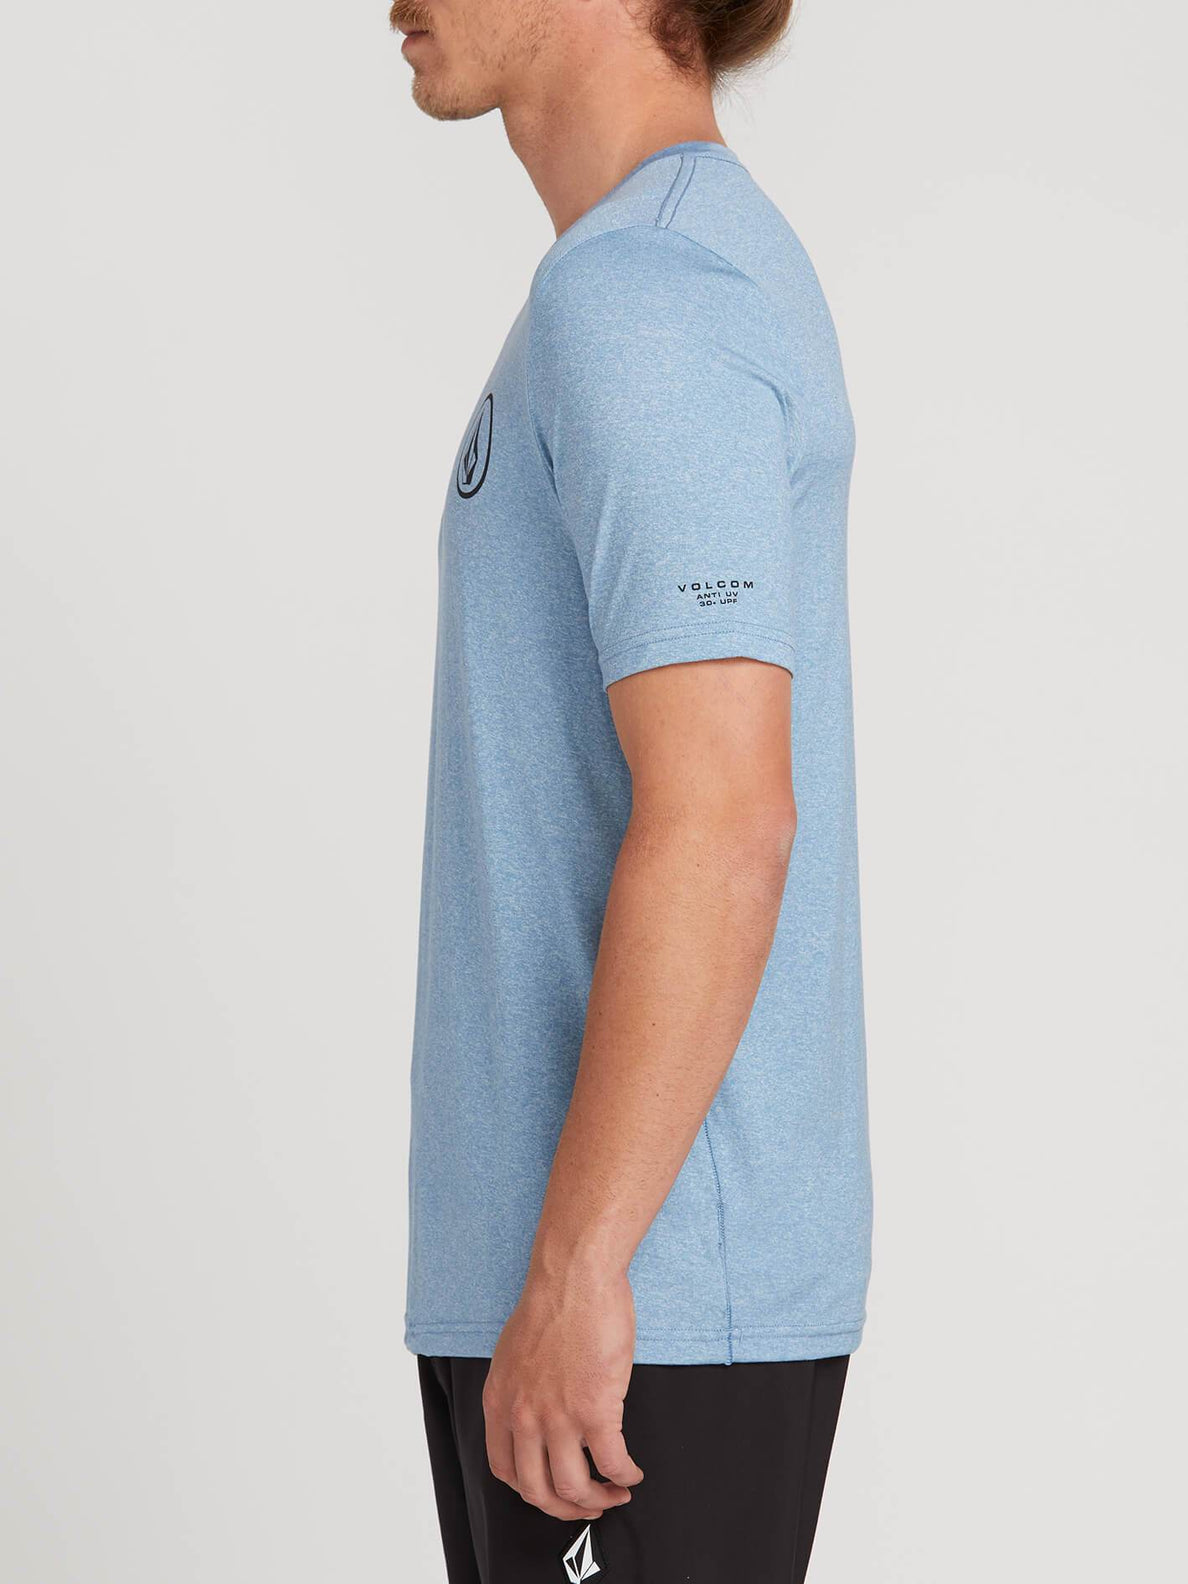 Lido Heather Short Sleeve Rashguard In Vintage Blue, Alternate View